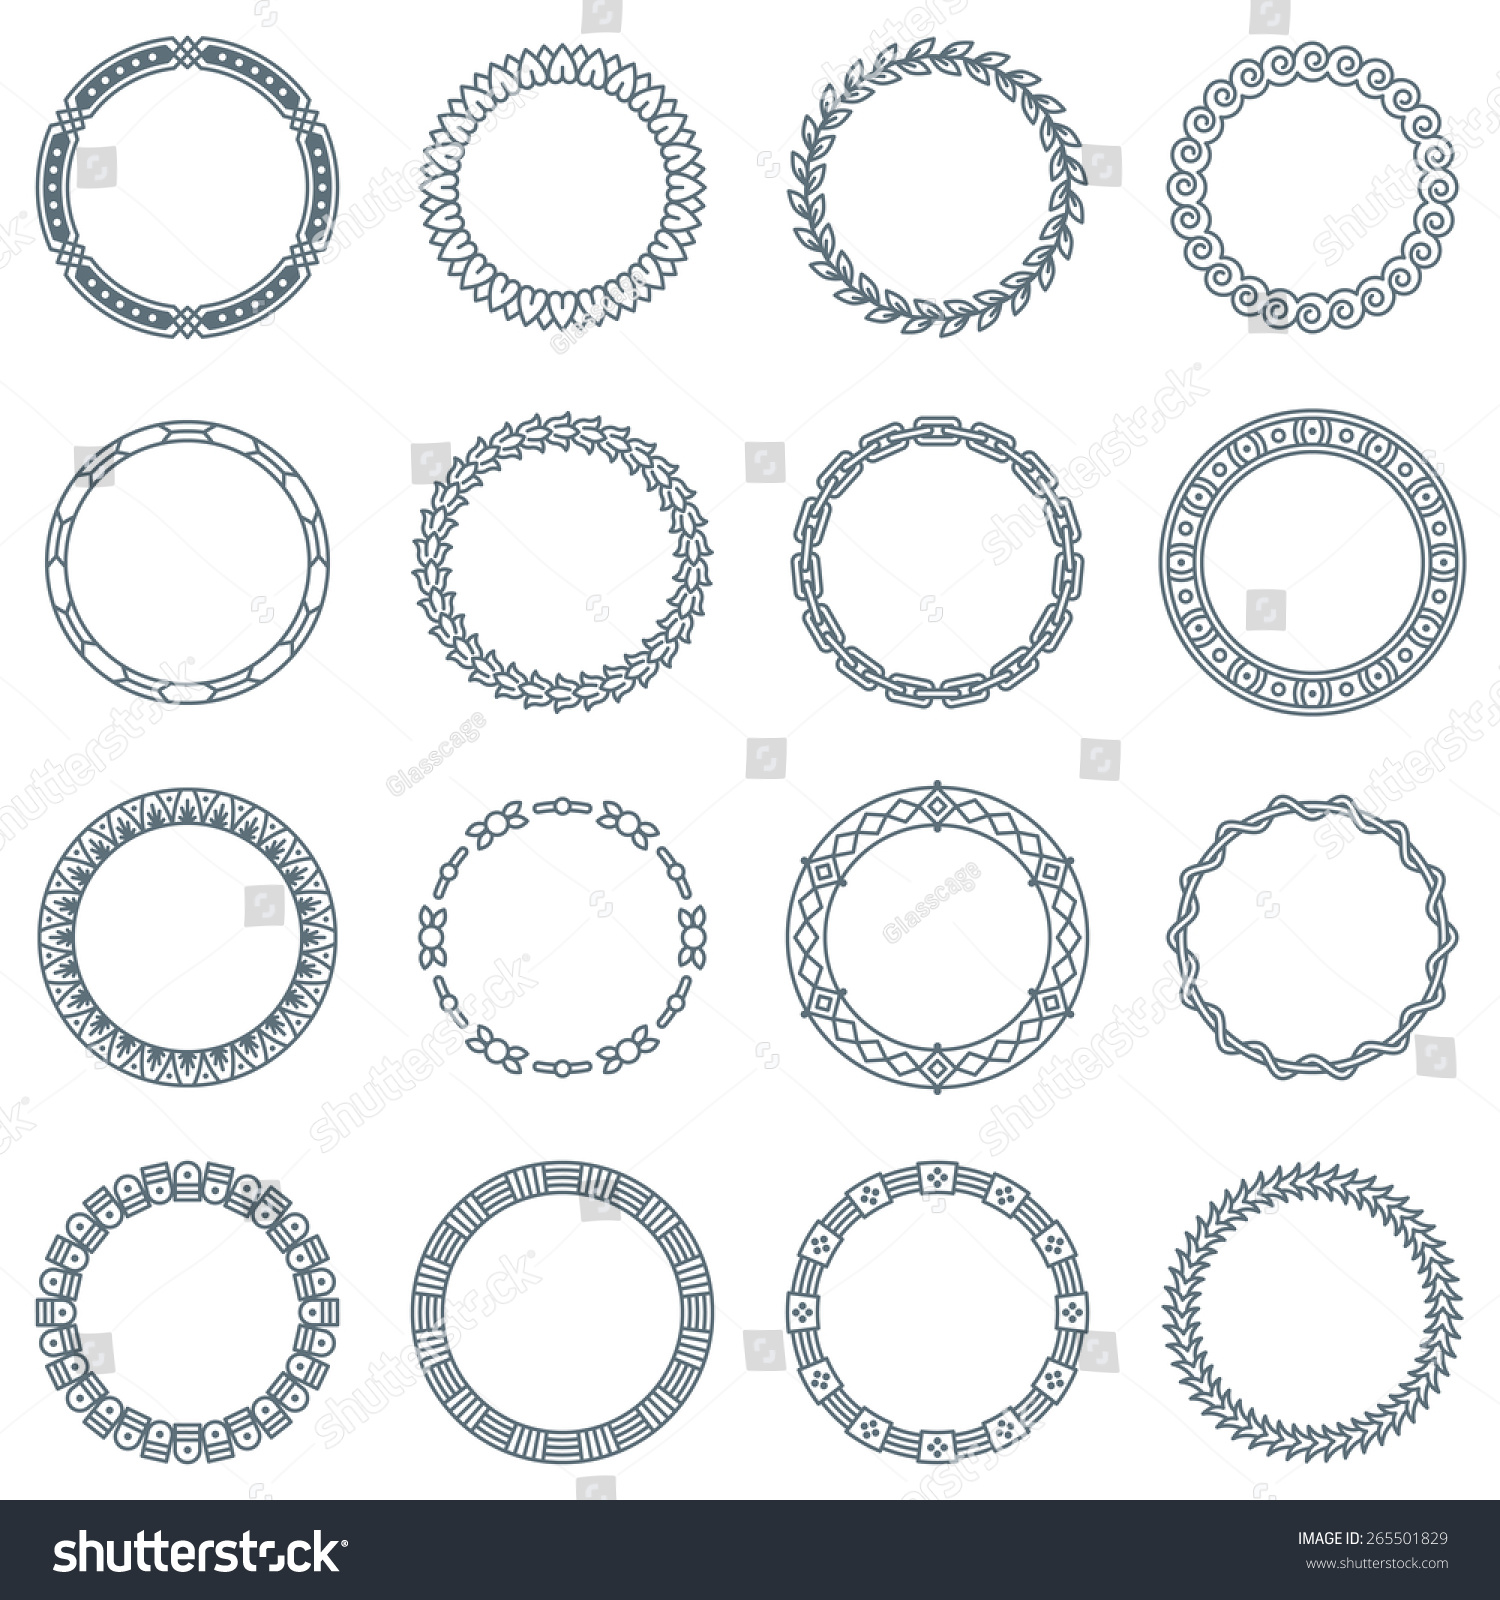 Collection Of 16 Round Decorative Frames And Labels With Lines Geometric Shapes And Nature